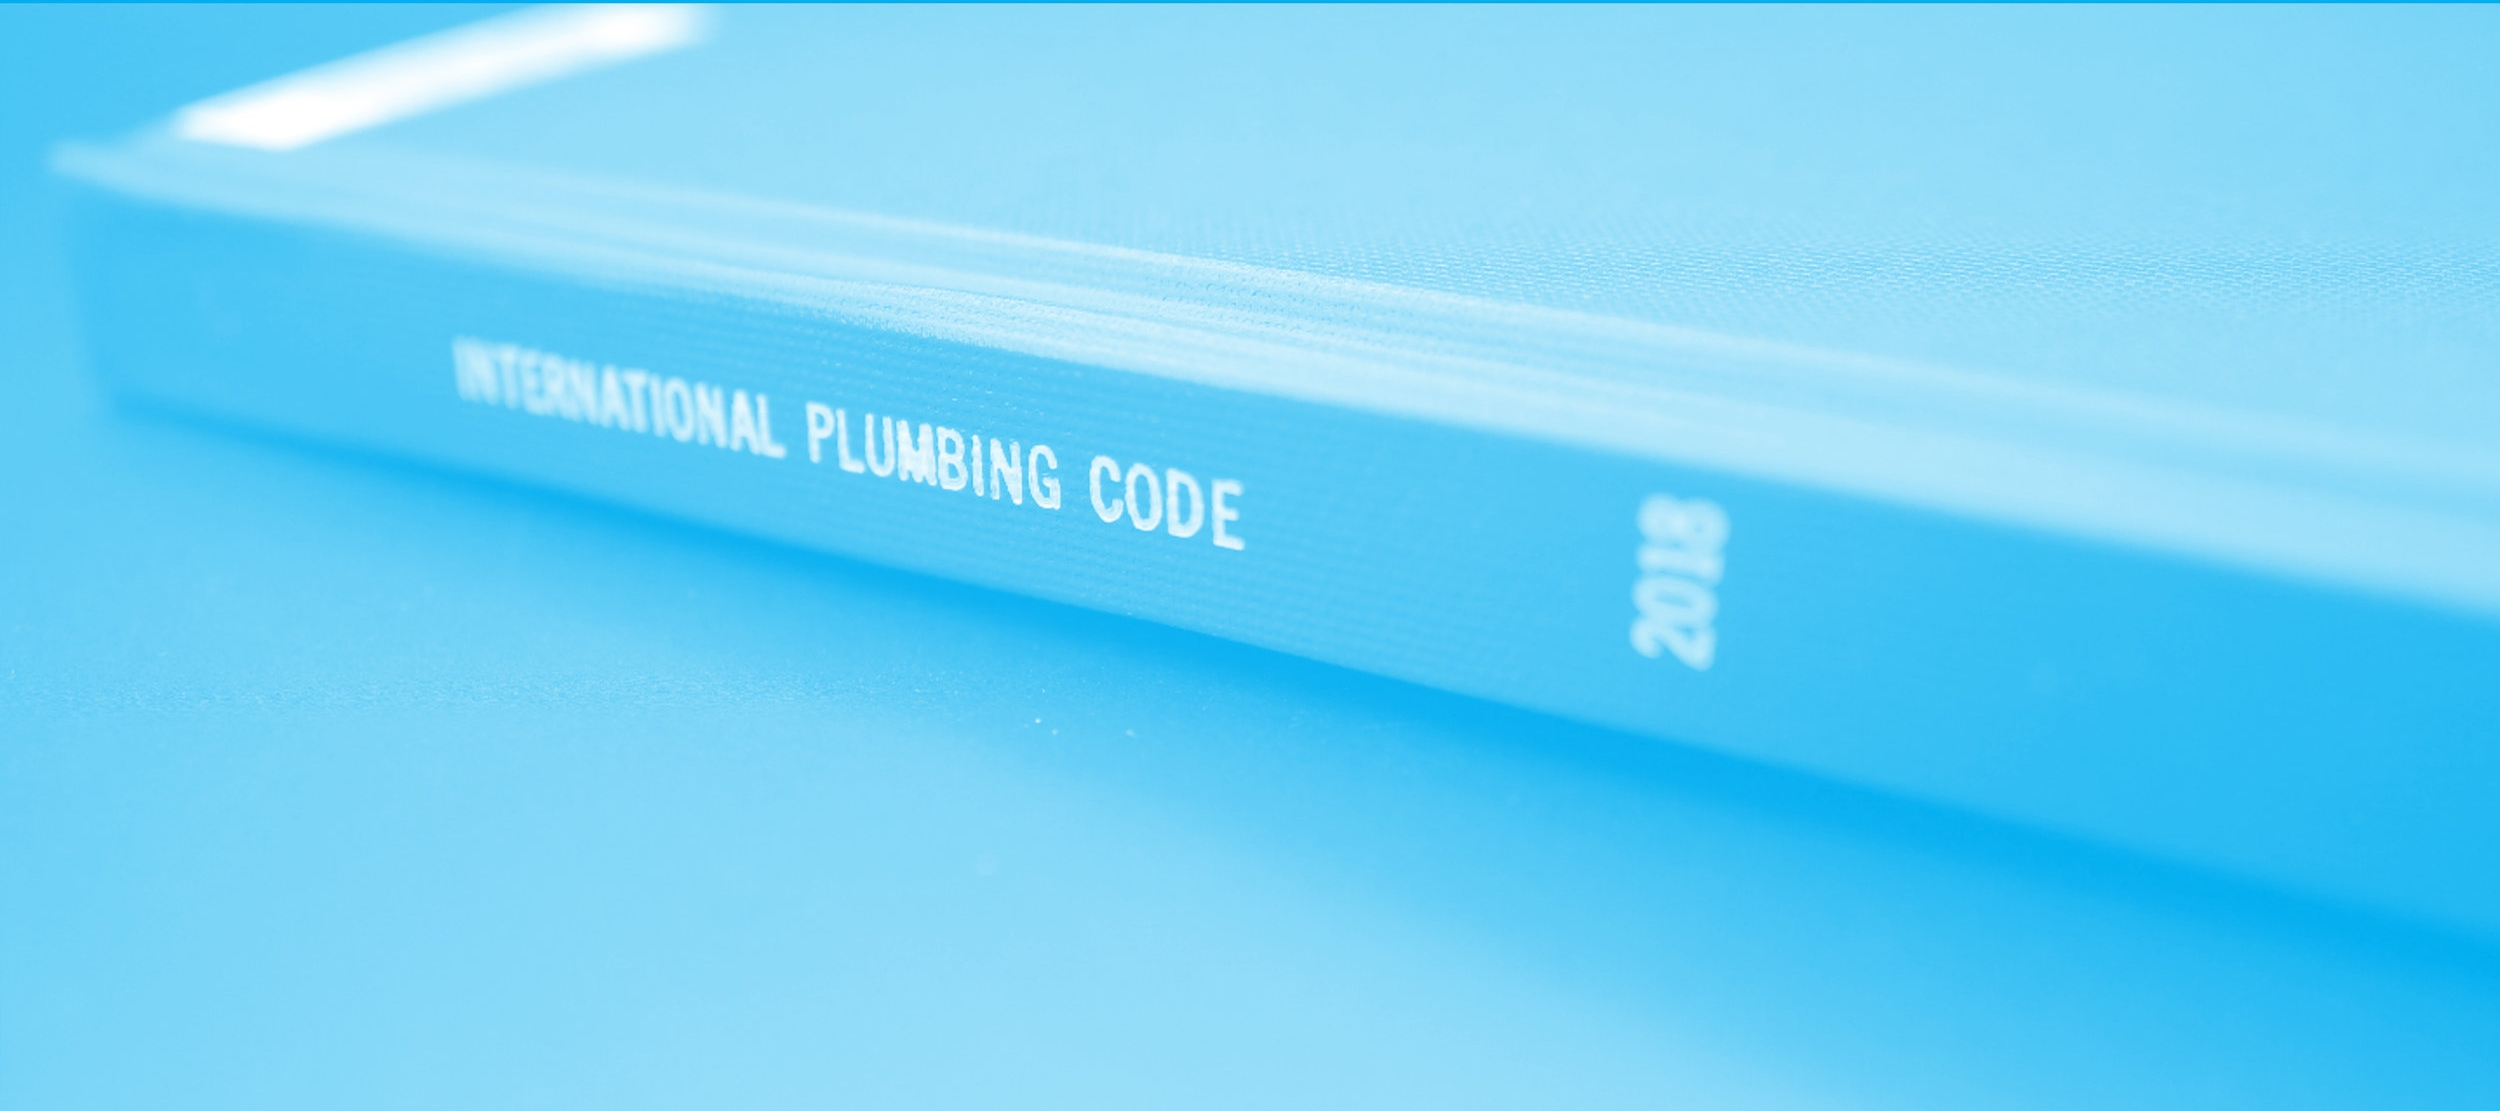 International Plumbing Code - Blue.jpg